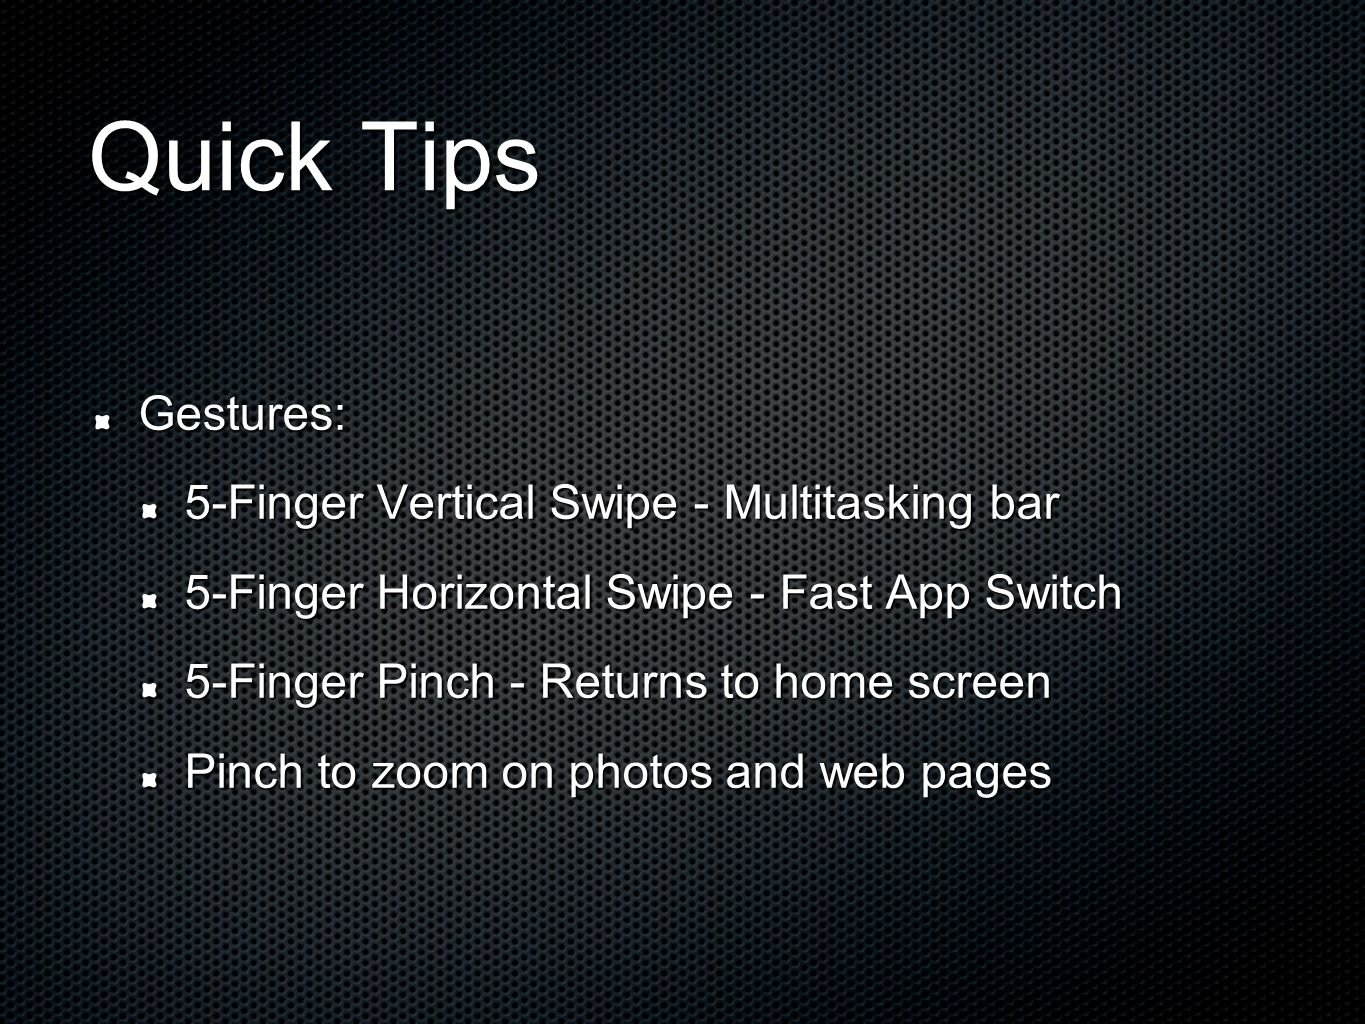 Quick Tips Gestures: 5-Finger Vertical Swipe - Multitasking bar